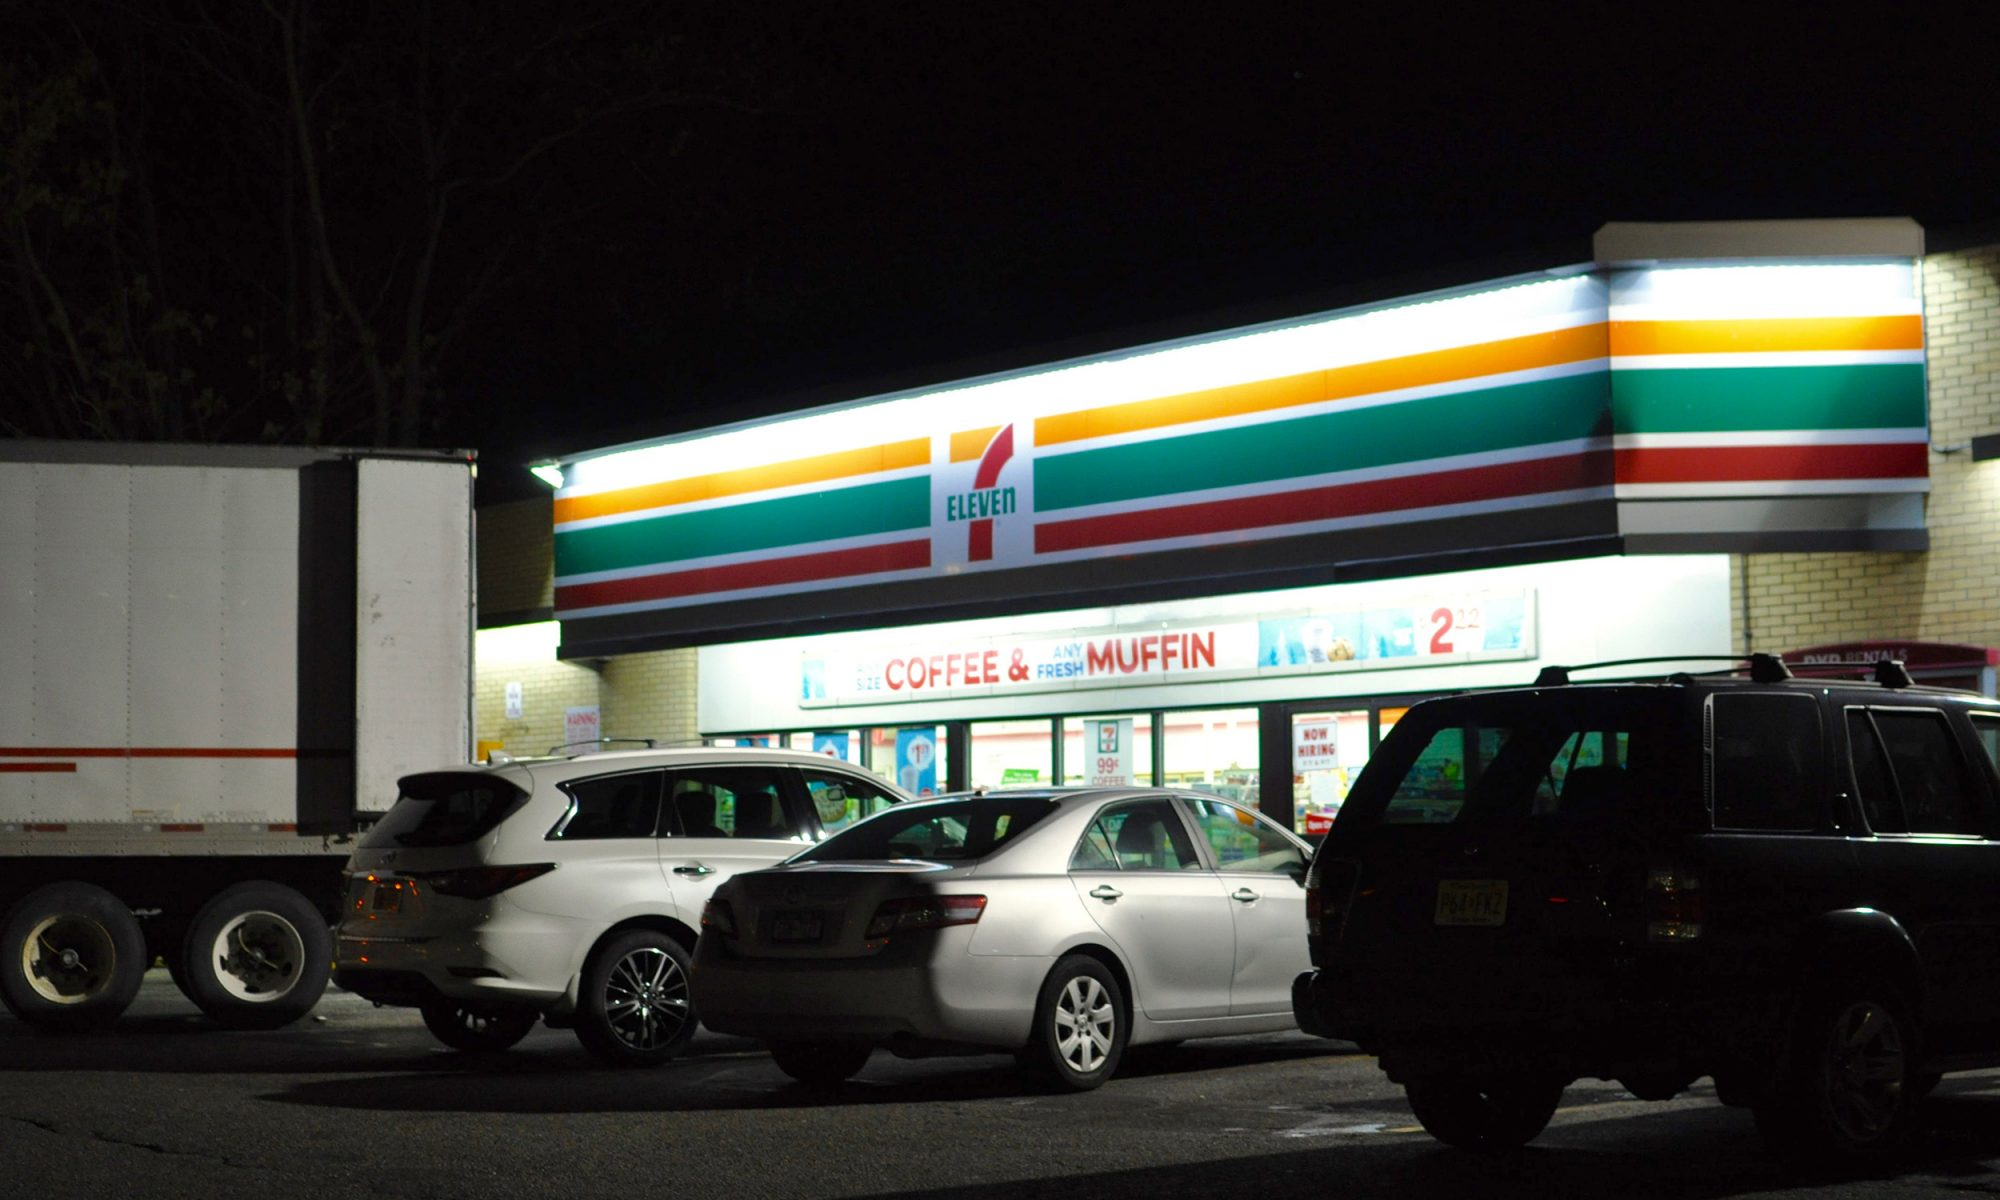 EC: Night of the Breakfast Sandwiches at 7-Eleven